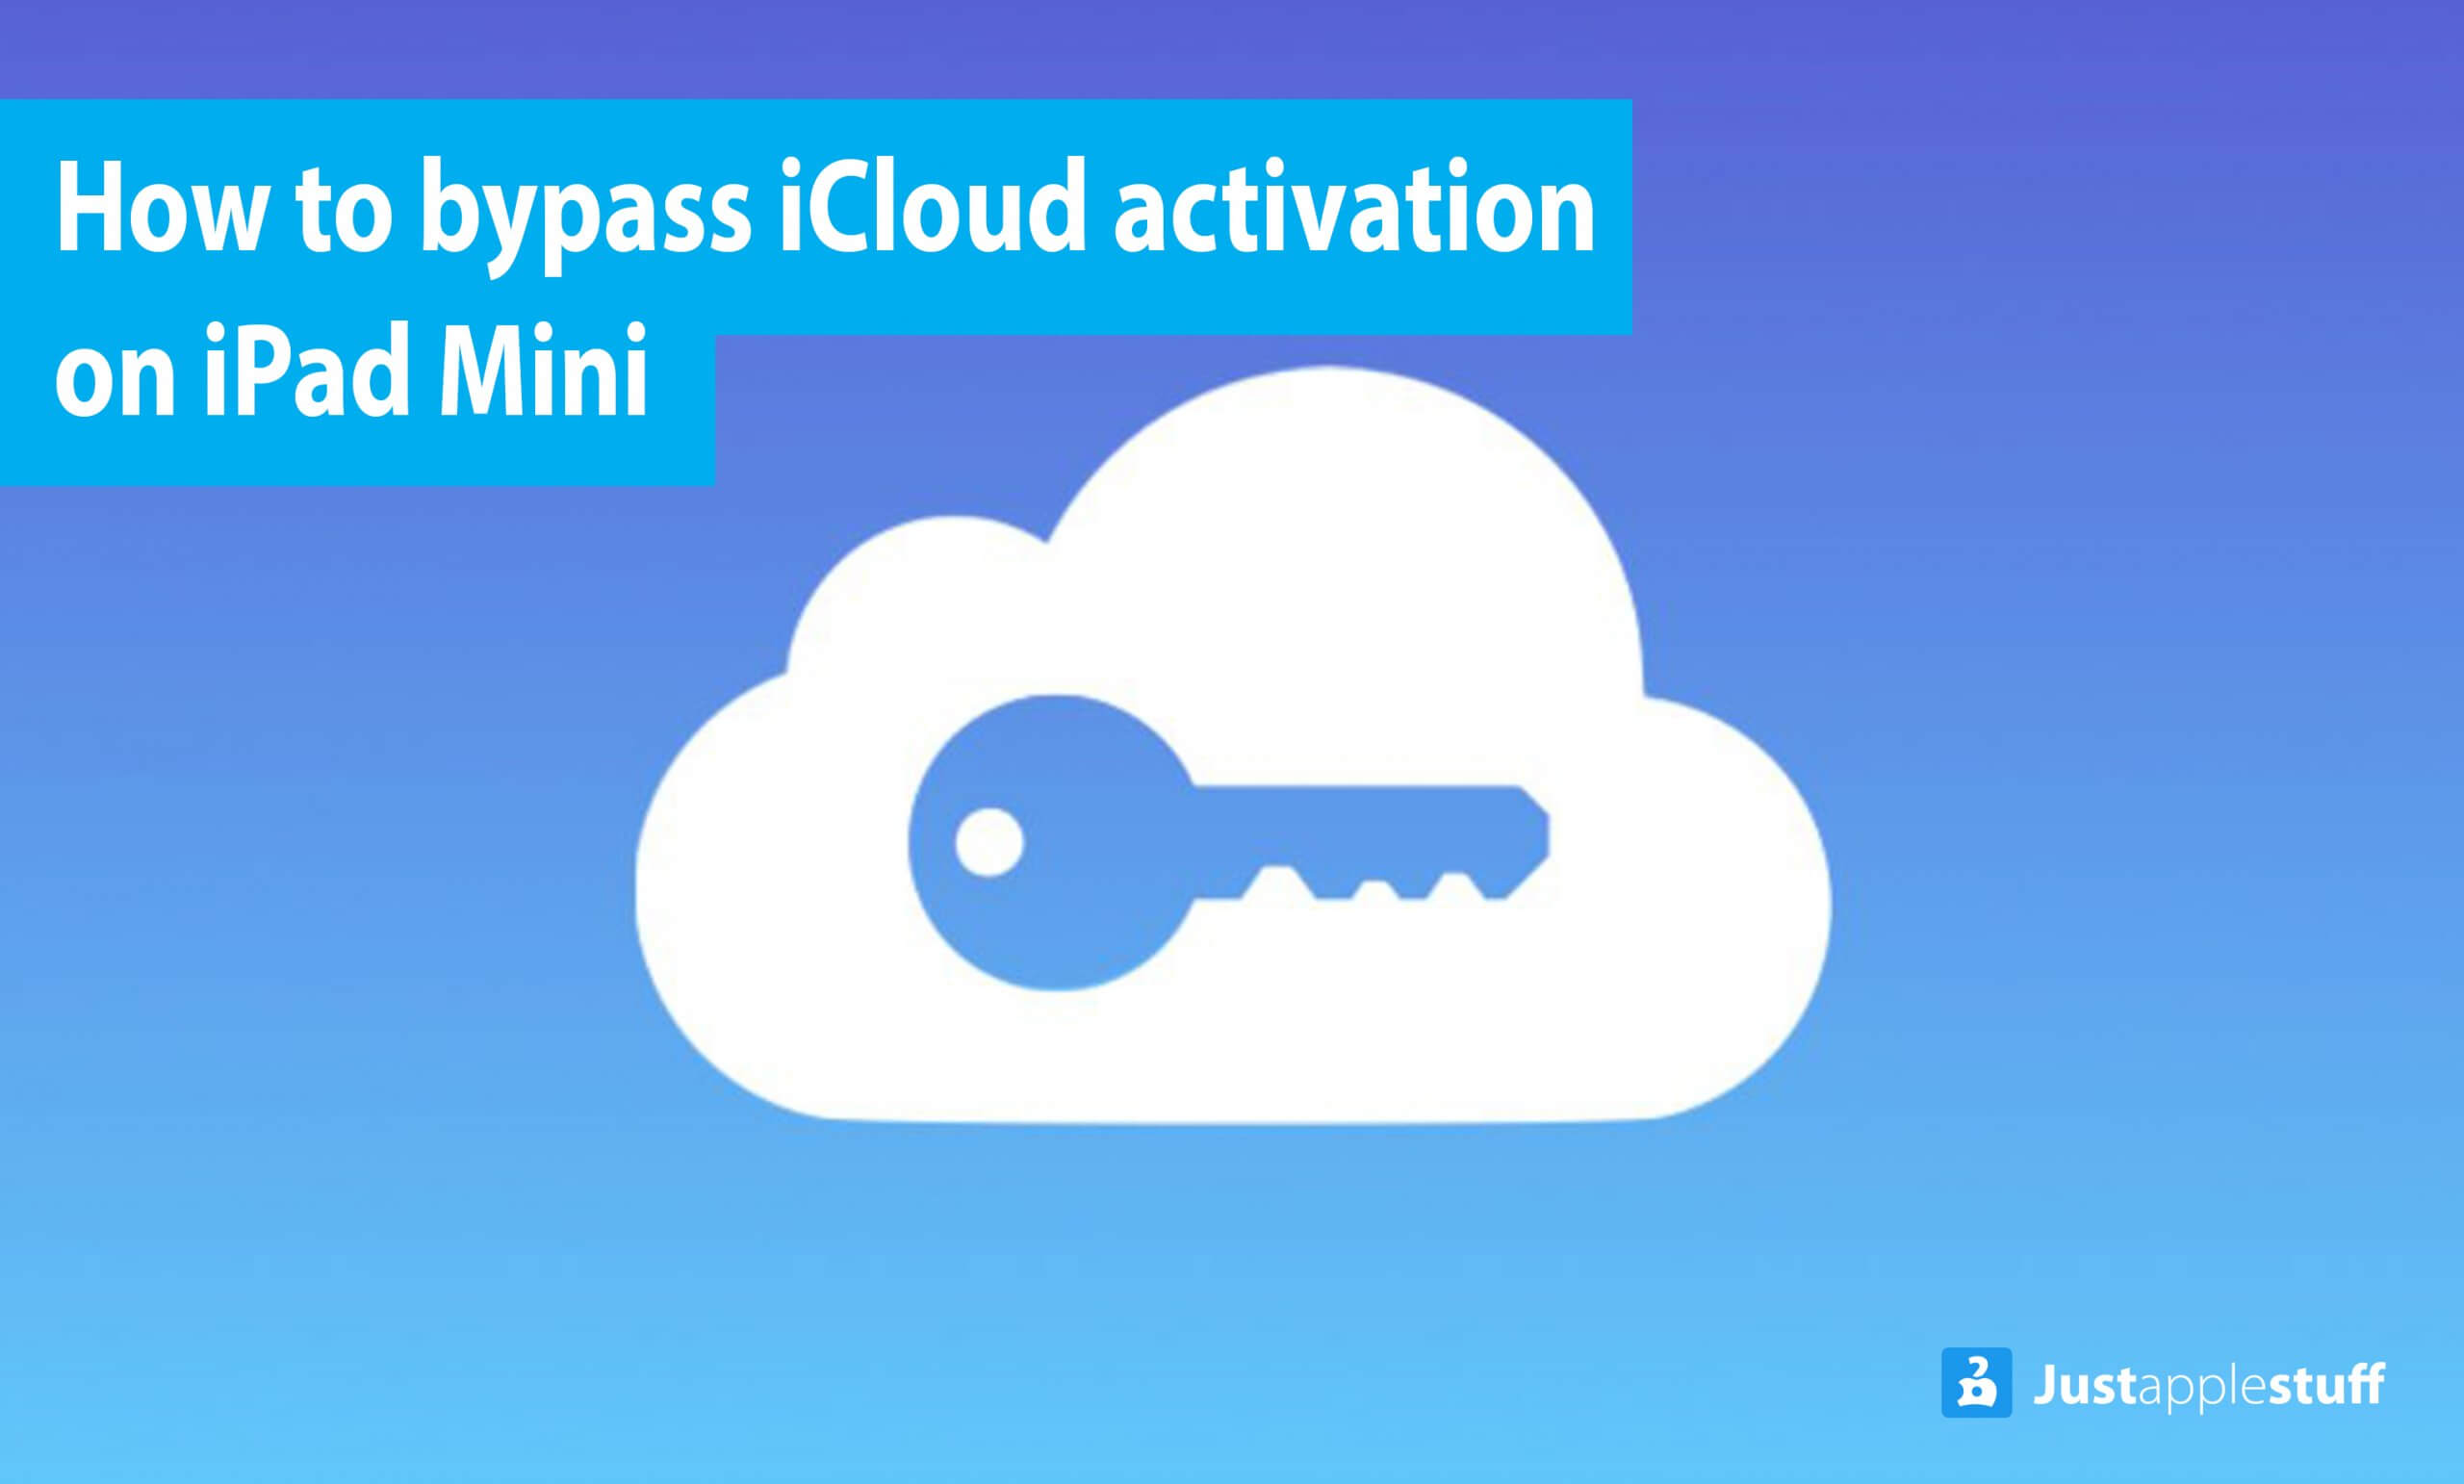 How to bypass iCloud activation on iPad Mini